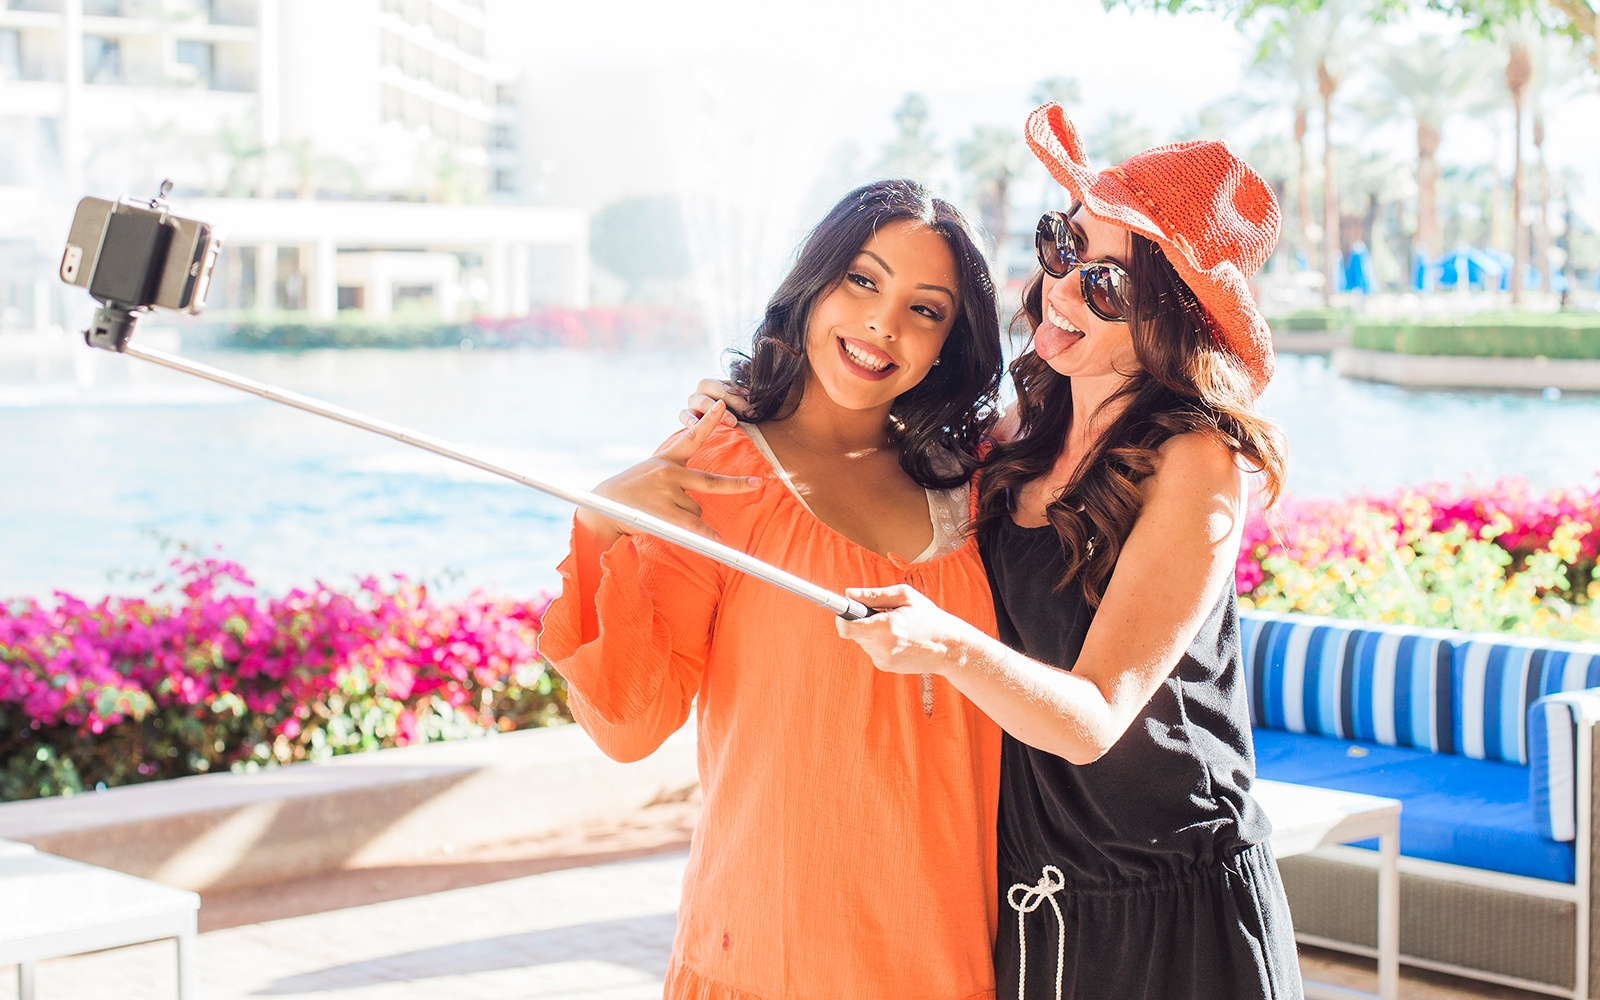 Marriott Takes Next Logical Step, Introduces 'Selfie Package'